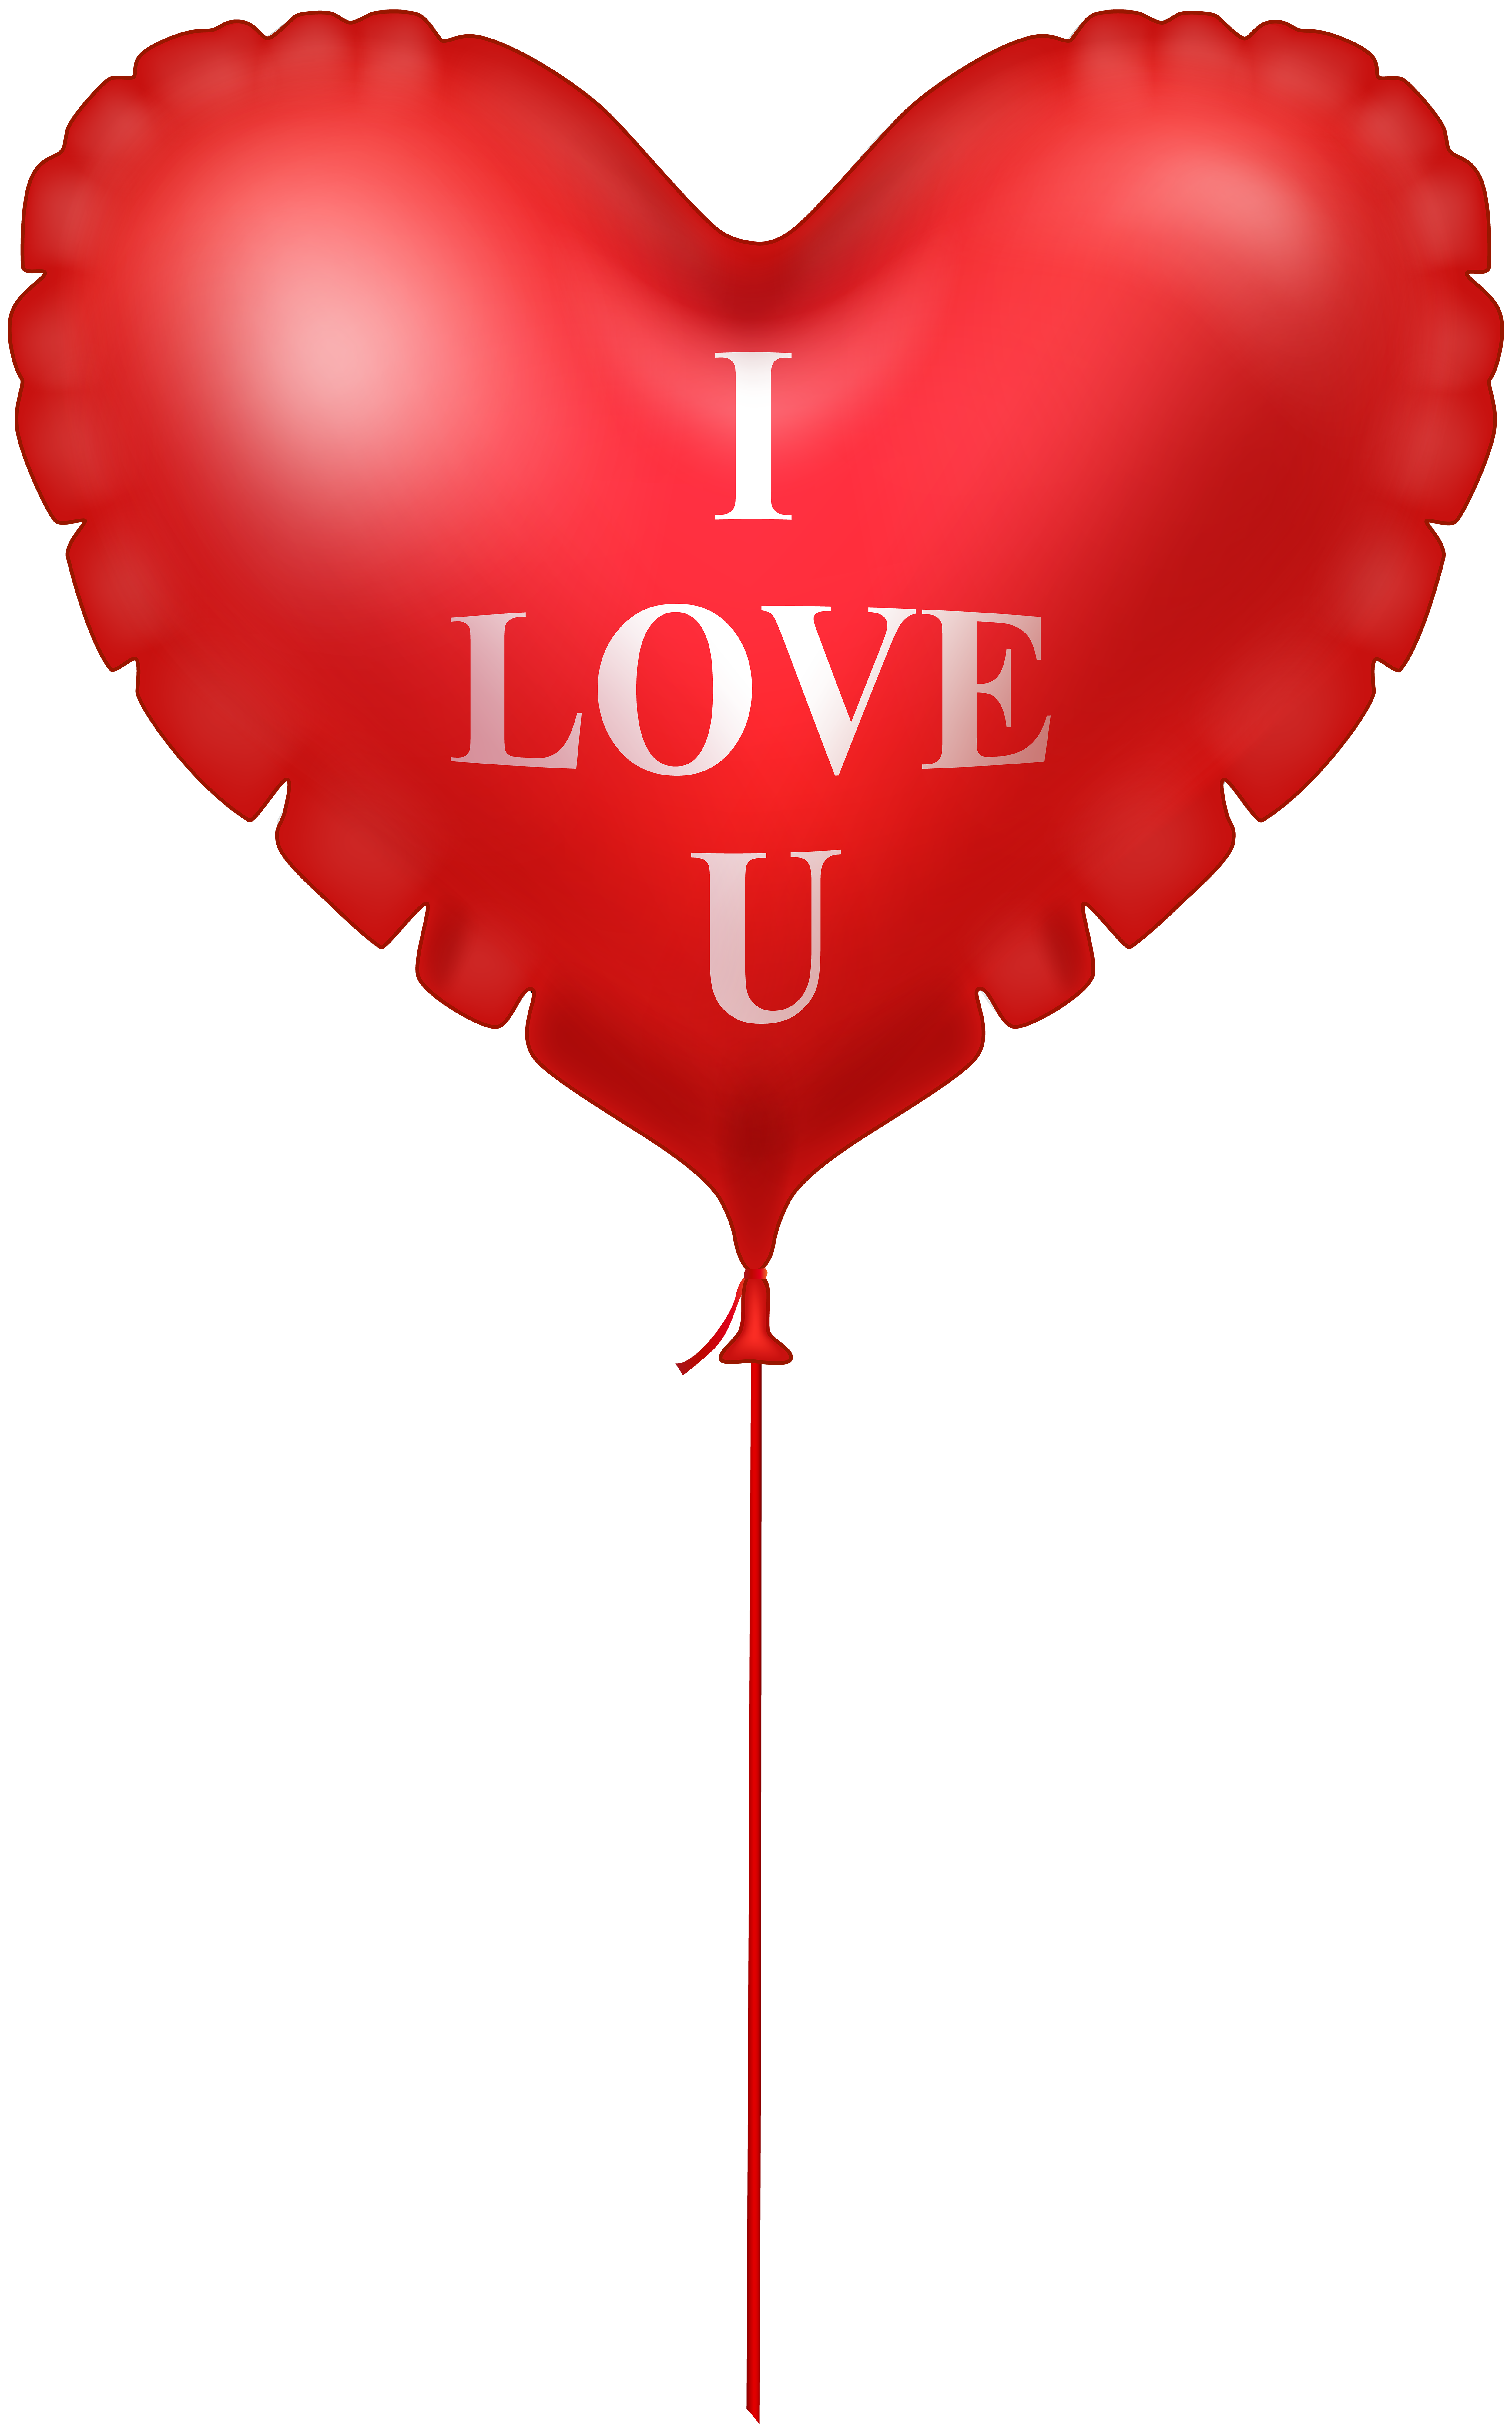 Love you balloon image. I heart png jpg free download